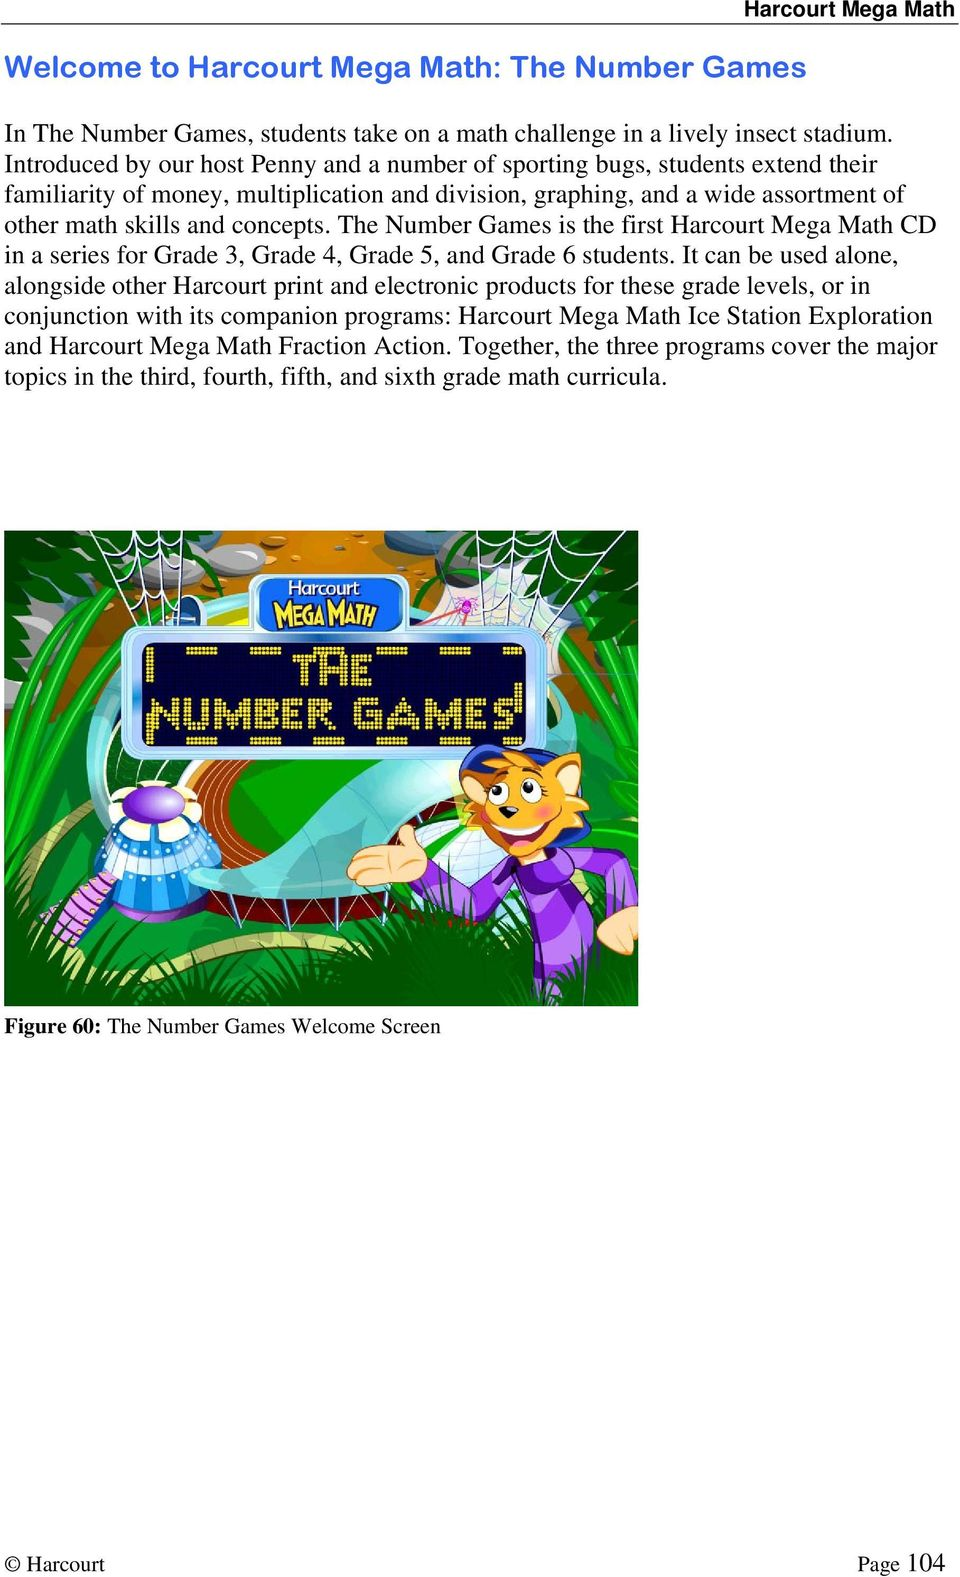 The Number Games is the first Harcourt Mega Math CD in a series for Grade 3, Grade 4, Grade 5, and Grade 6 students.